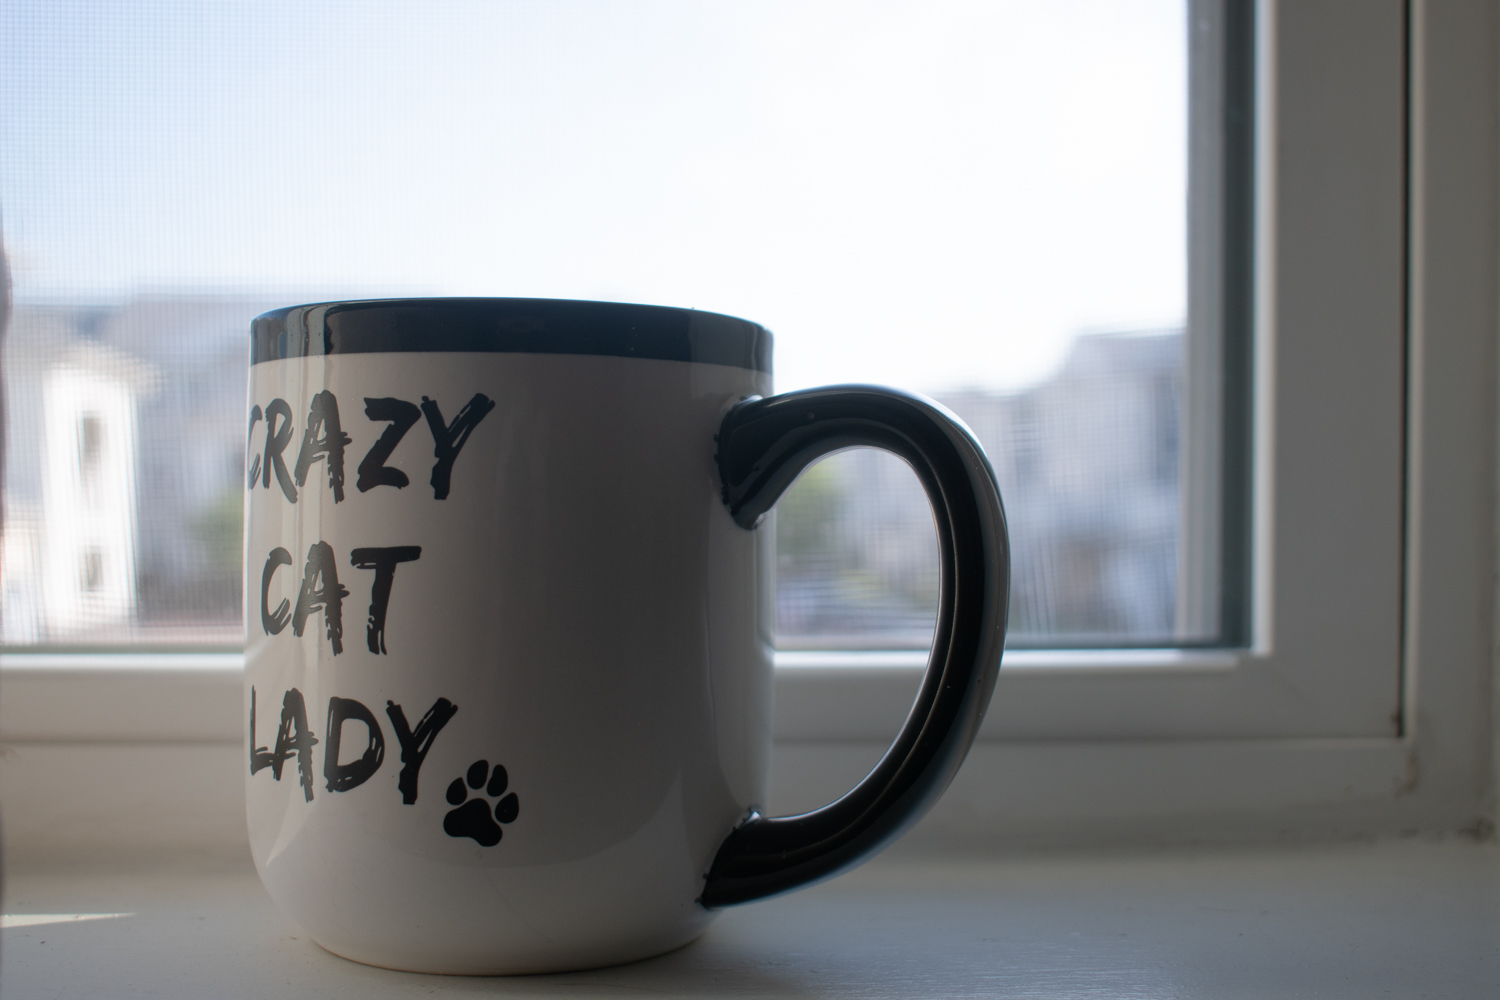 A crazy cat lady mug in my old apartment's window.